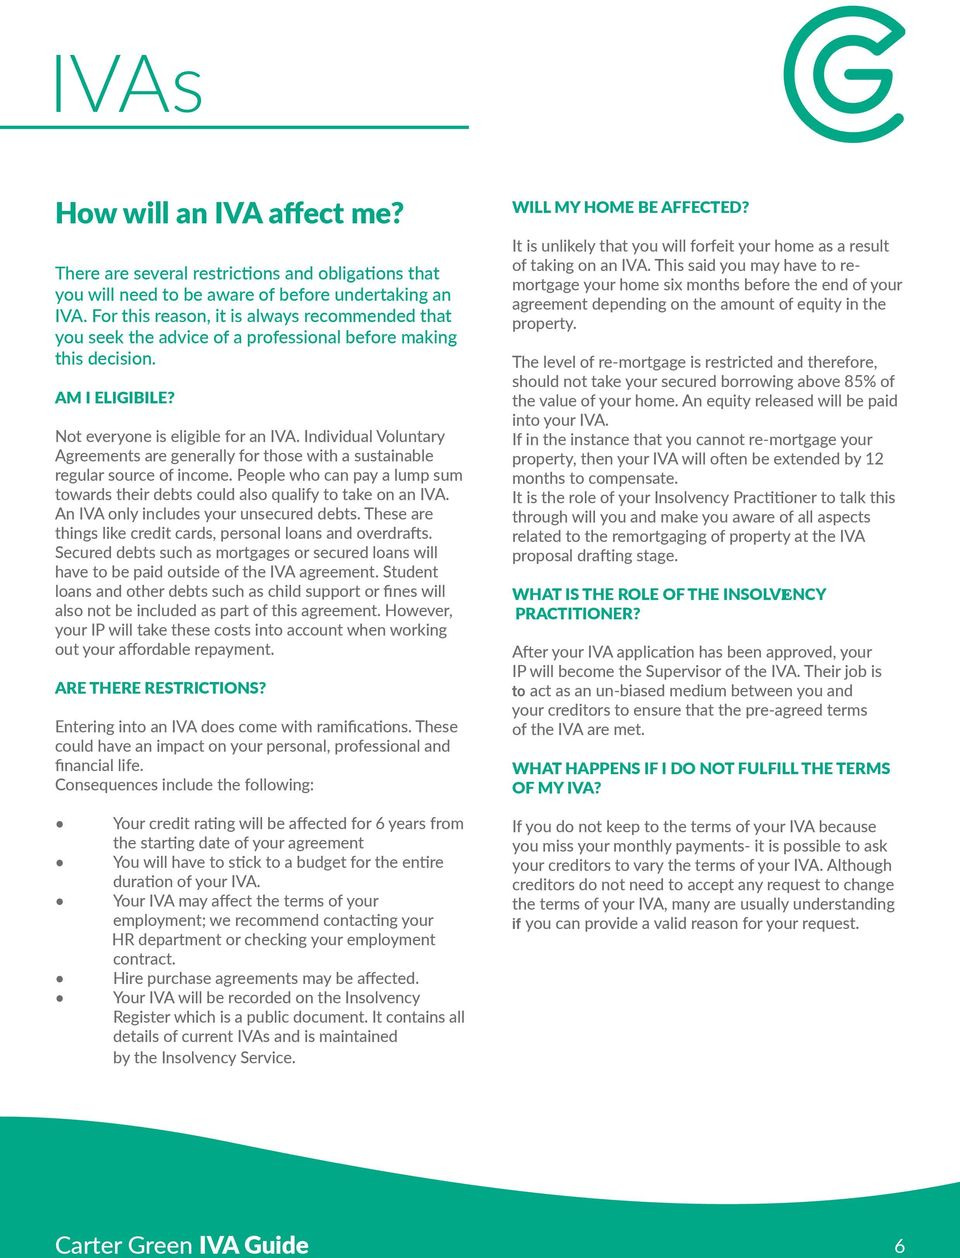 Individual Voluntary Agreements are generally for those with a sustainable regular source of income. People who can pay a lump sum towards their debts could also qualify to take on an IVA.